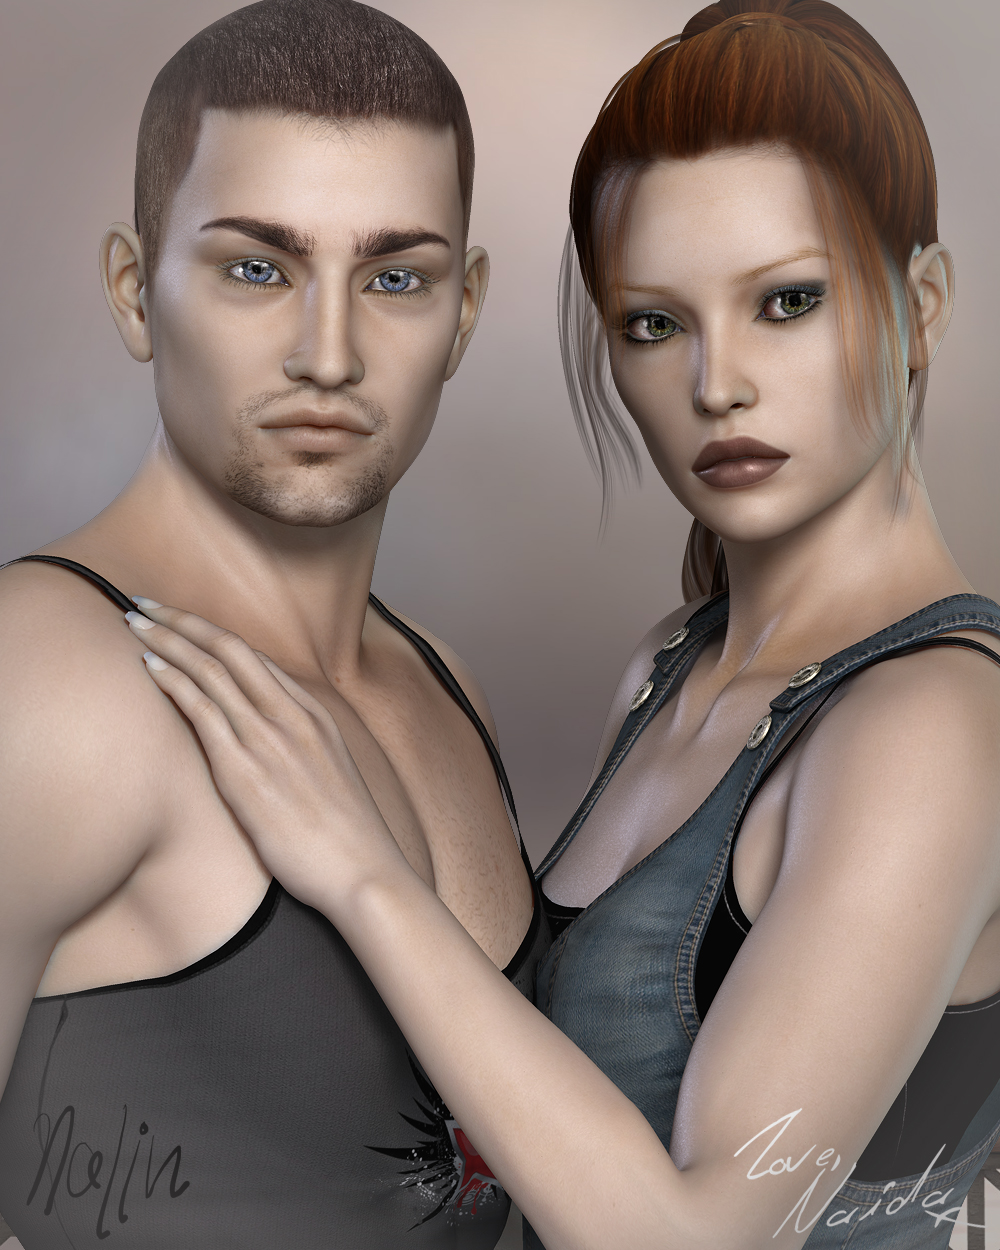 FW Naida and Nalin by: Fred Winkler Art, 3D Models by Daz 3D